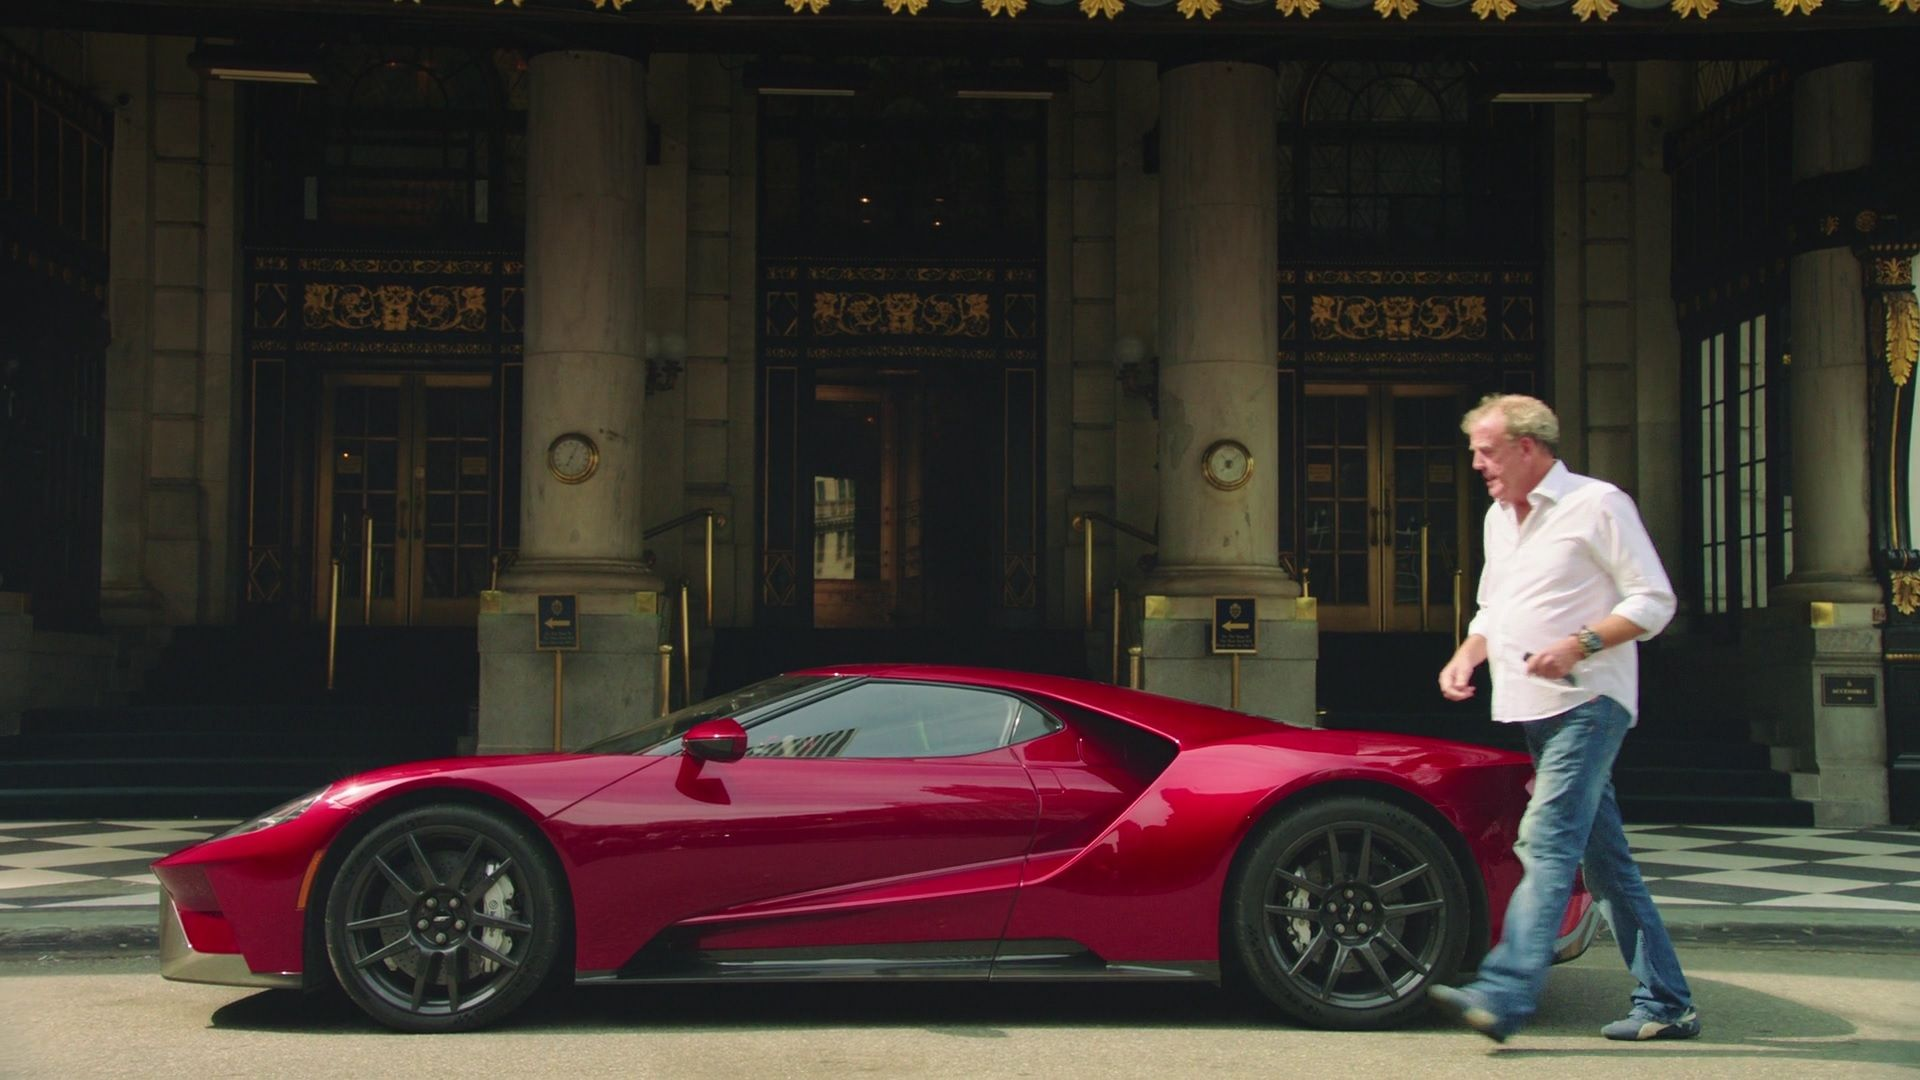 The Grand Tour Clarkson With Ford Gt Grand Tour Ford Gt Grands